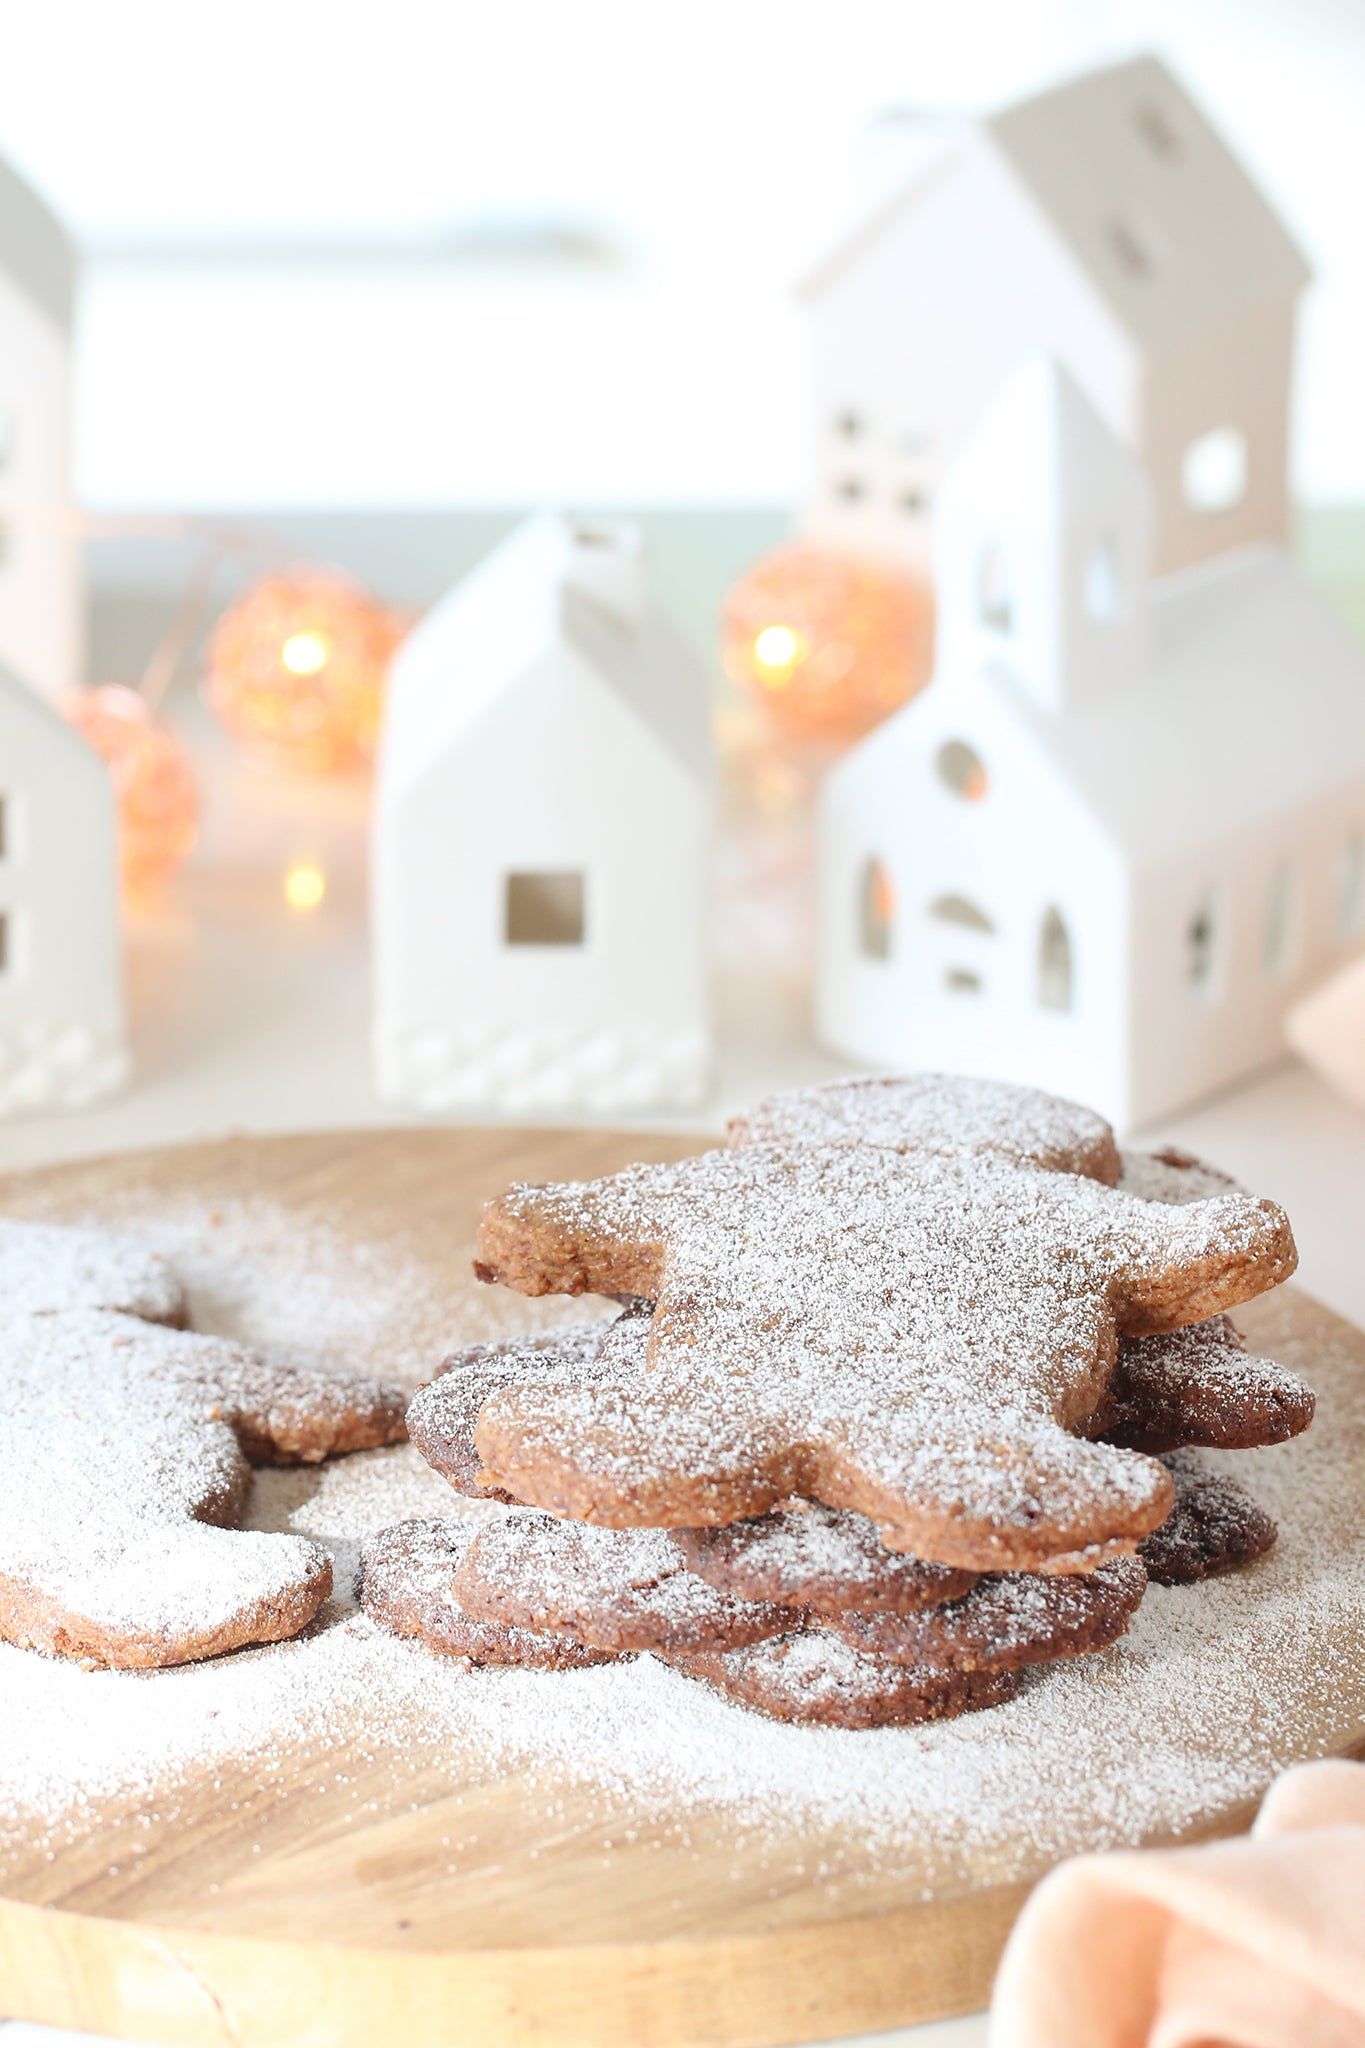 Healthy vegan gingerbread men did you say? These are for you (or your homemade gifts)! Think buttery crumbly shortbread, spiced with Mr Claus's favourites, made extra spesh thanks to a few secret additions. Vegan, dairy free, low sugar + no refined sugar.